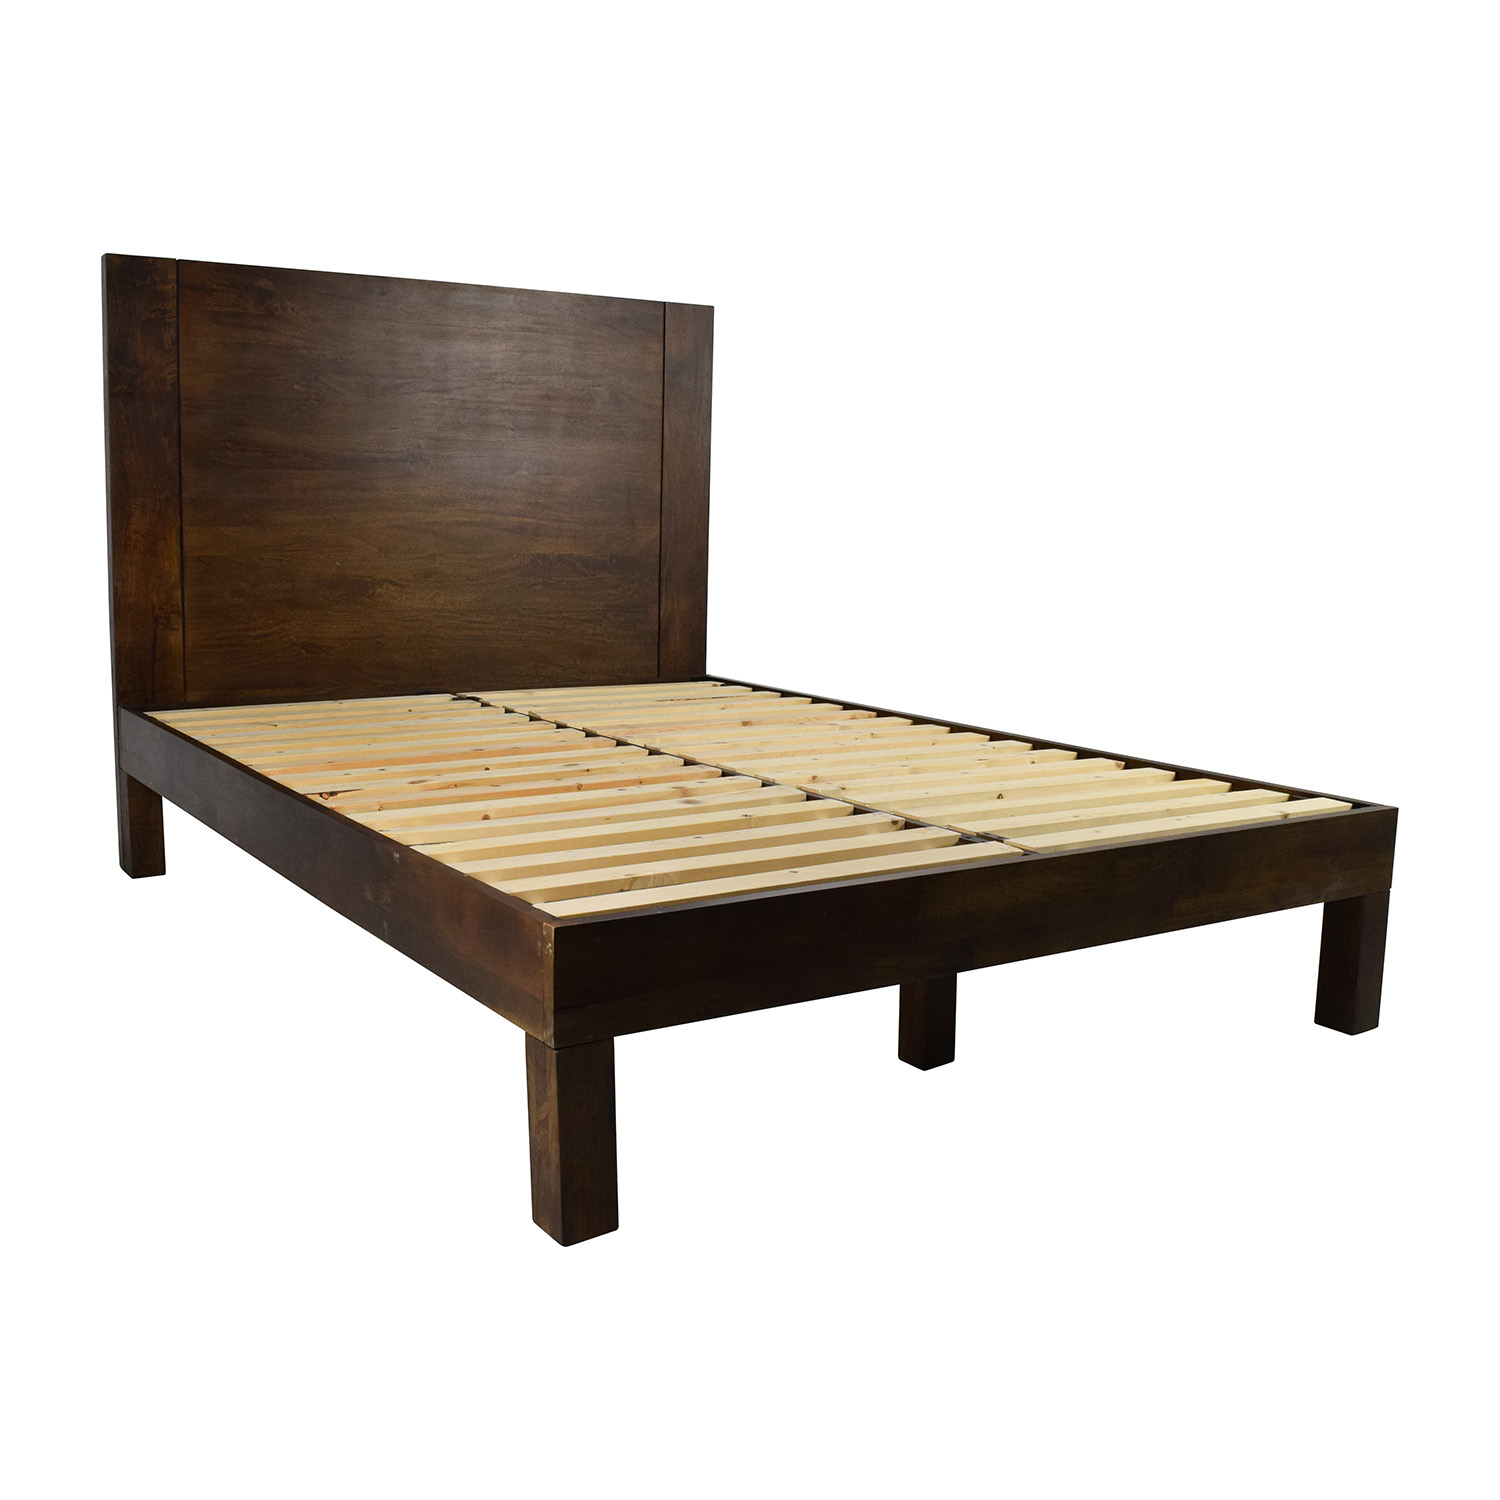 west elm west elm boerum queen bed second hand